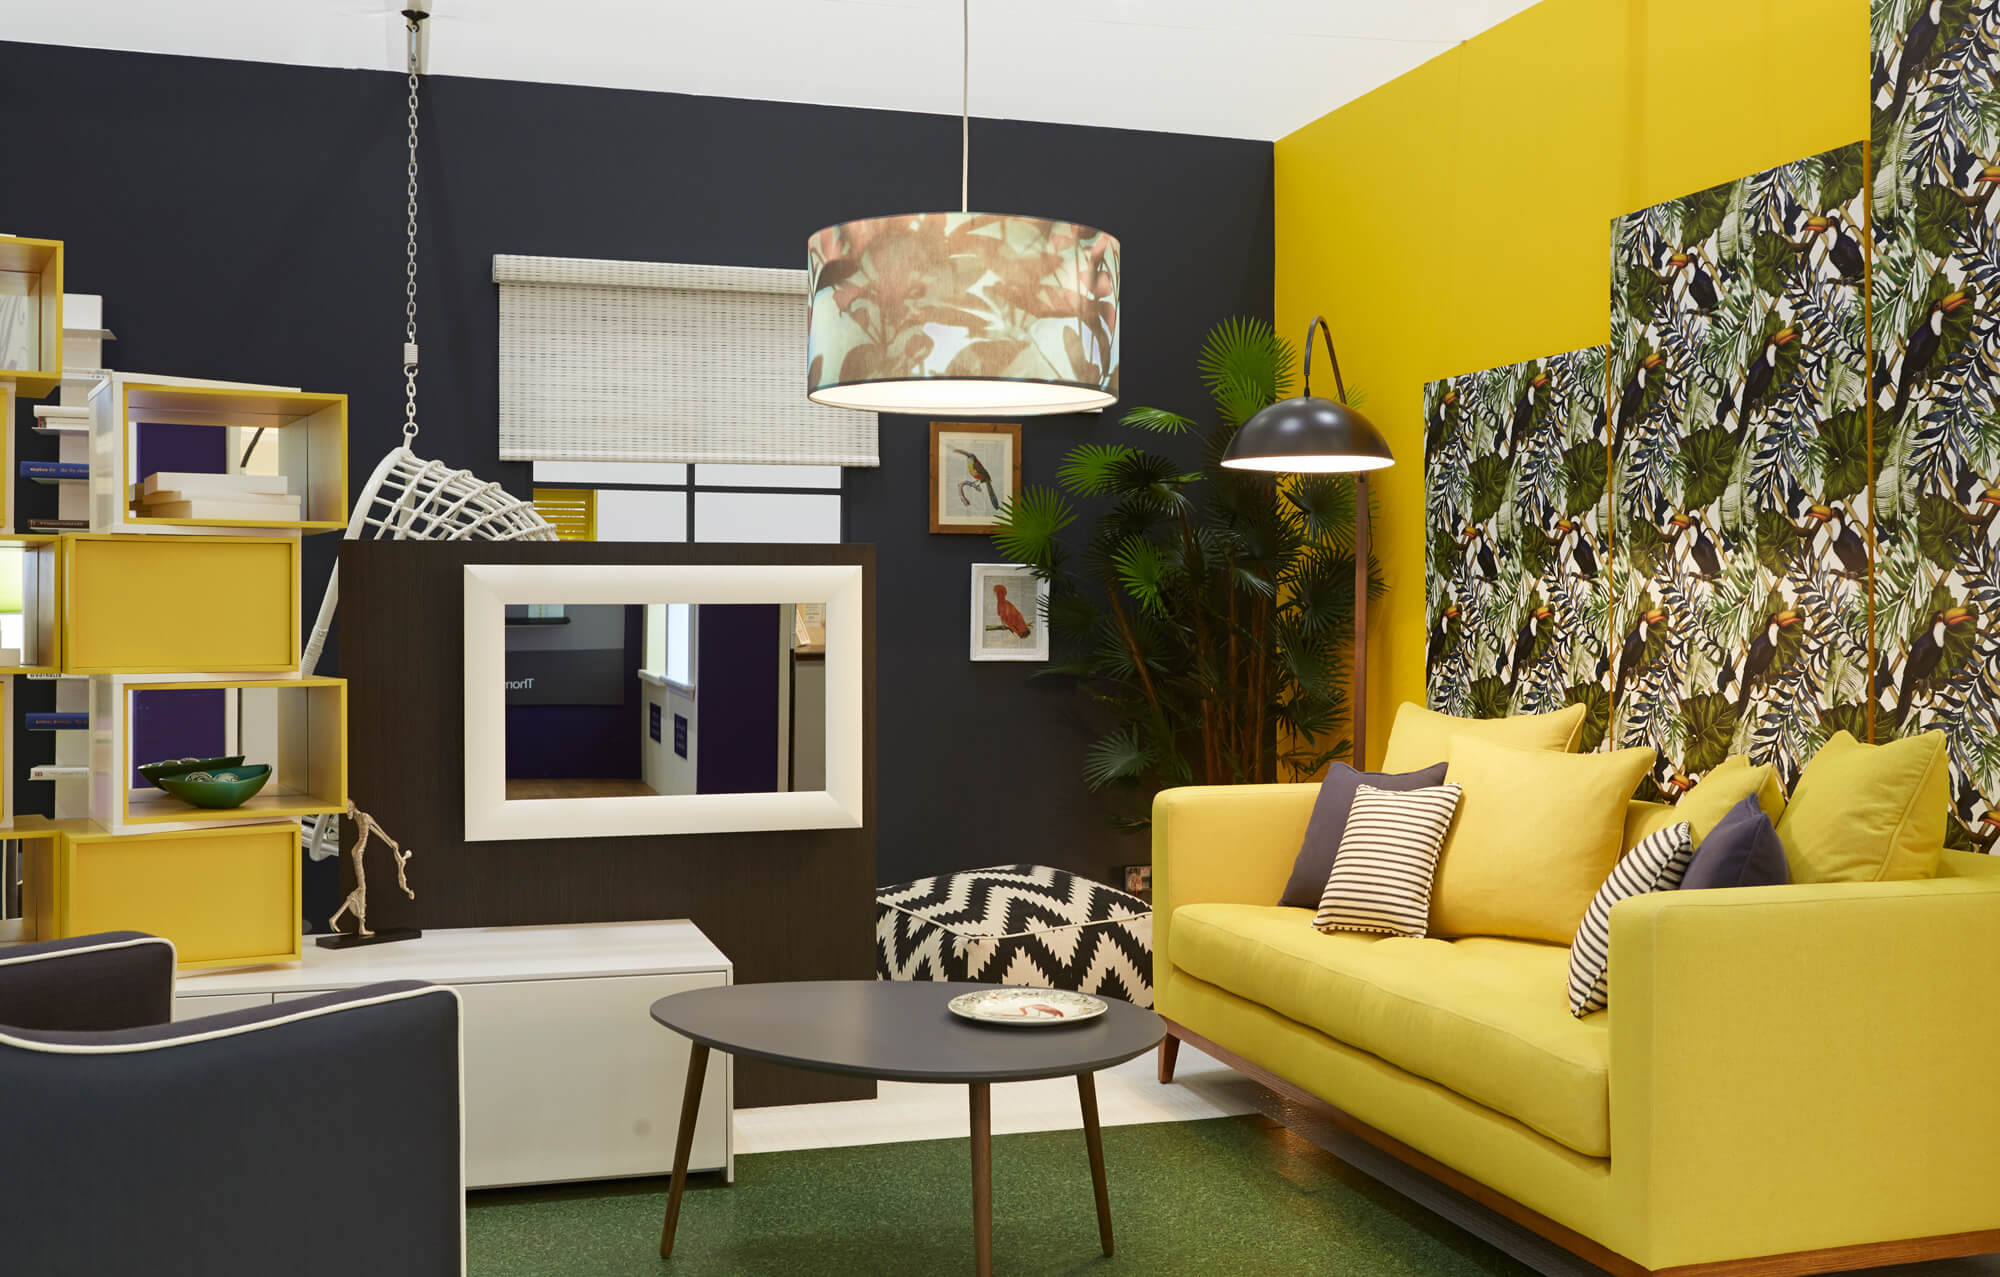 The inspiration starts here…with a visit to Grand Designs Live